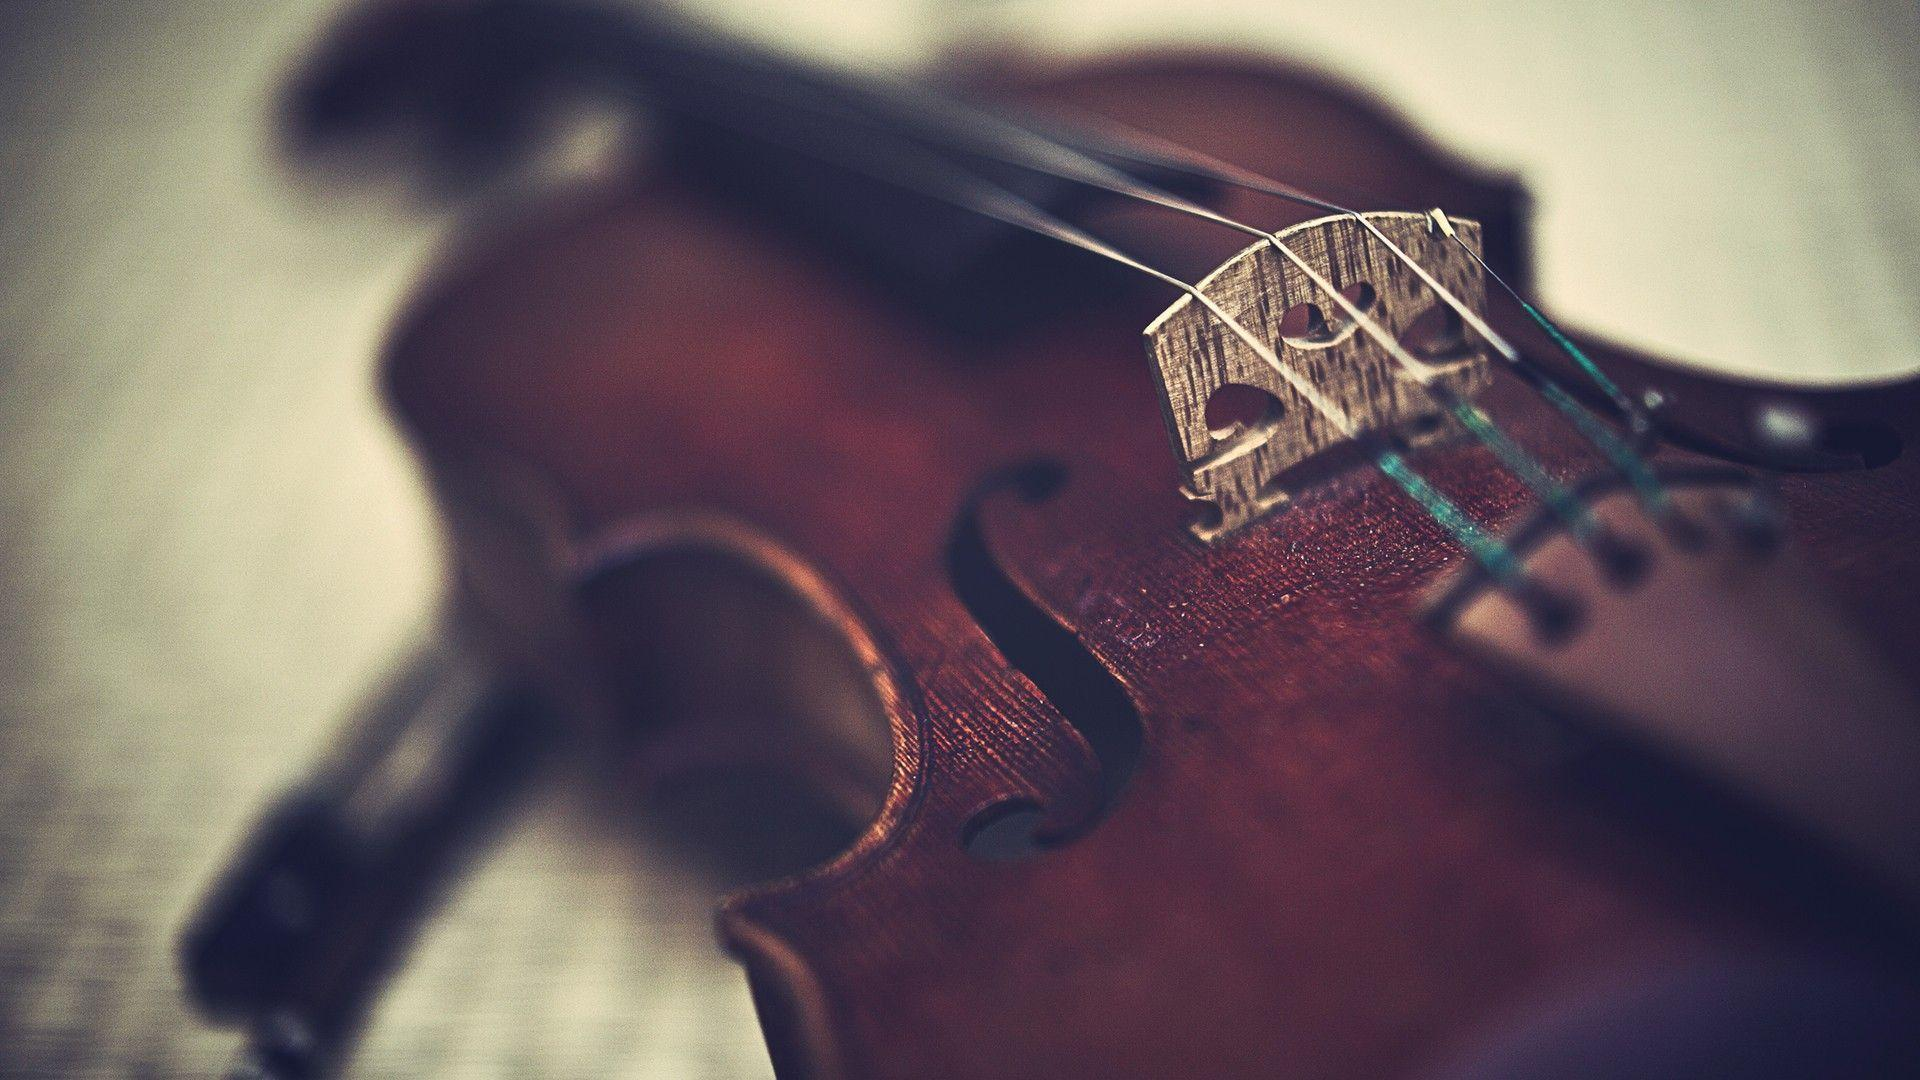 violin wallpaper | Ace Wallpaper